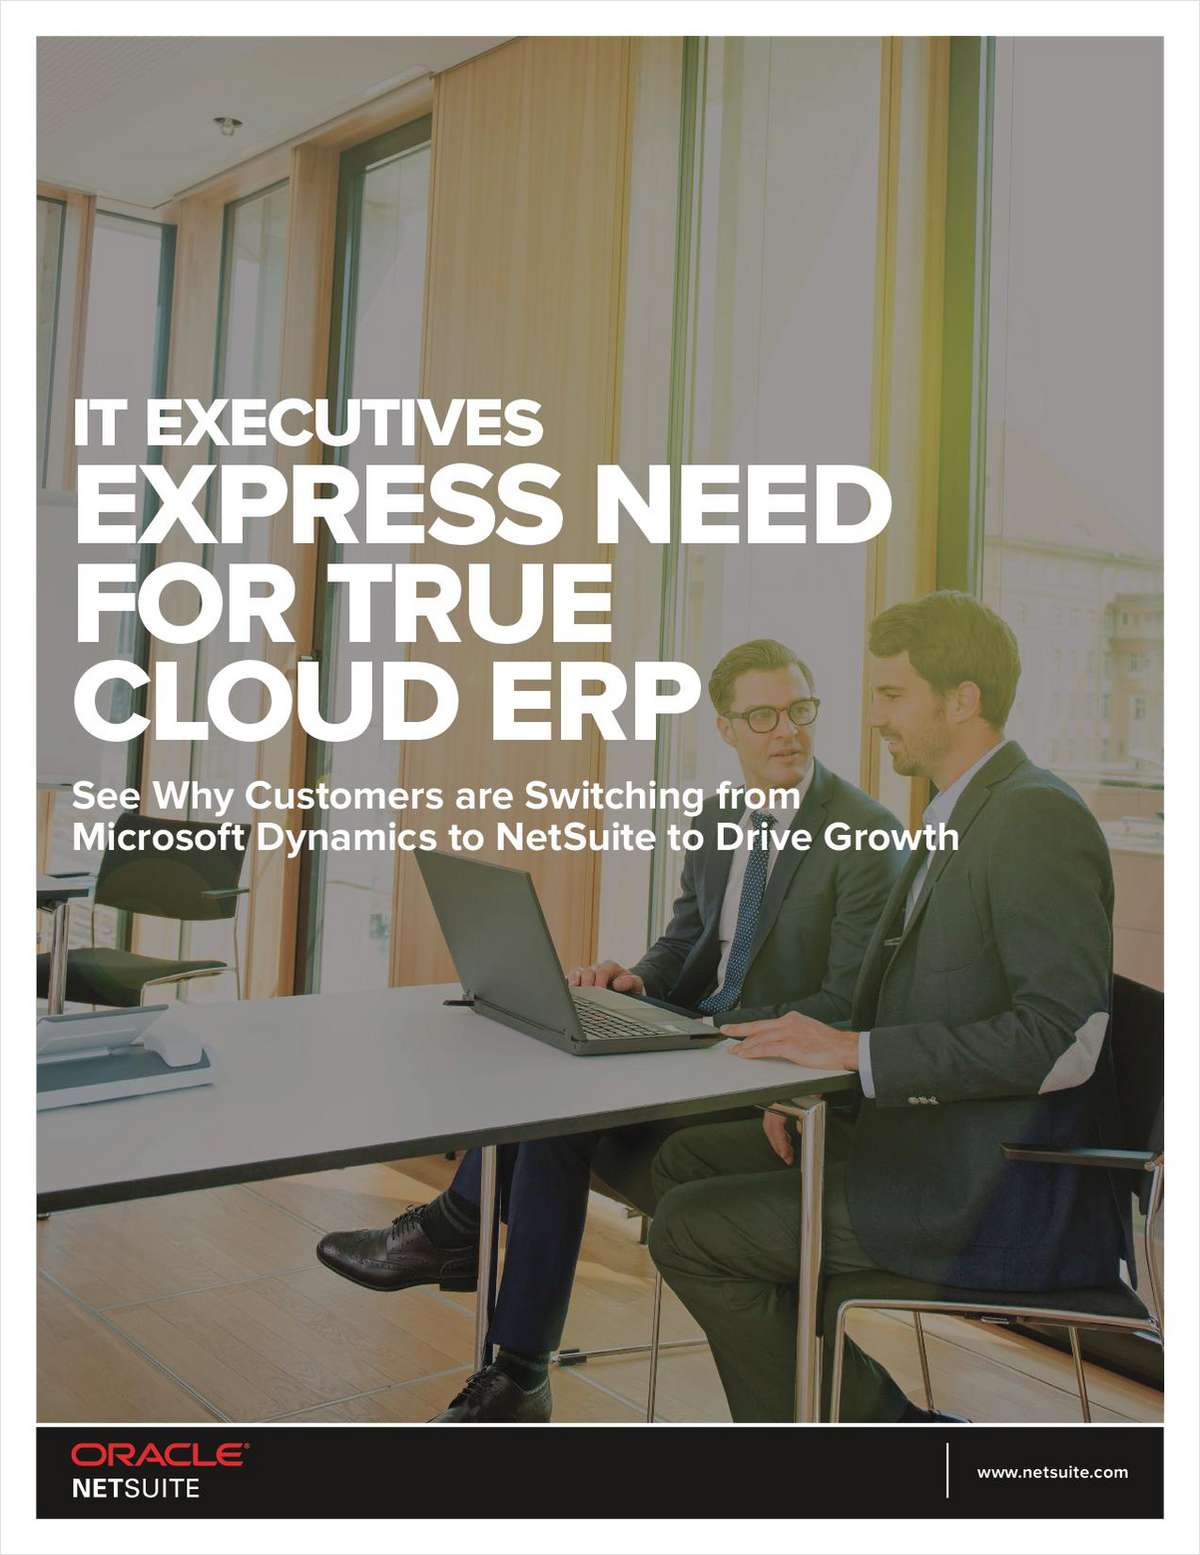 IT Executives Express Need for True Cloud ERP